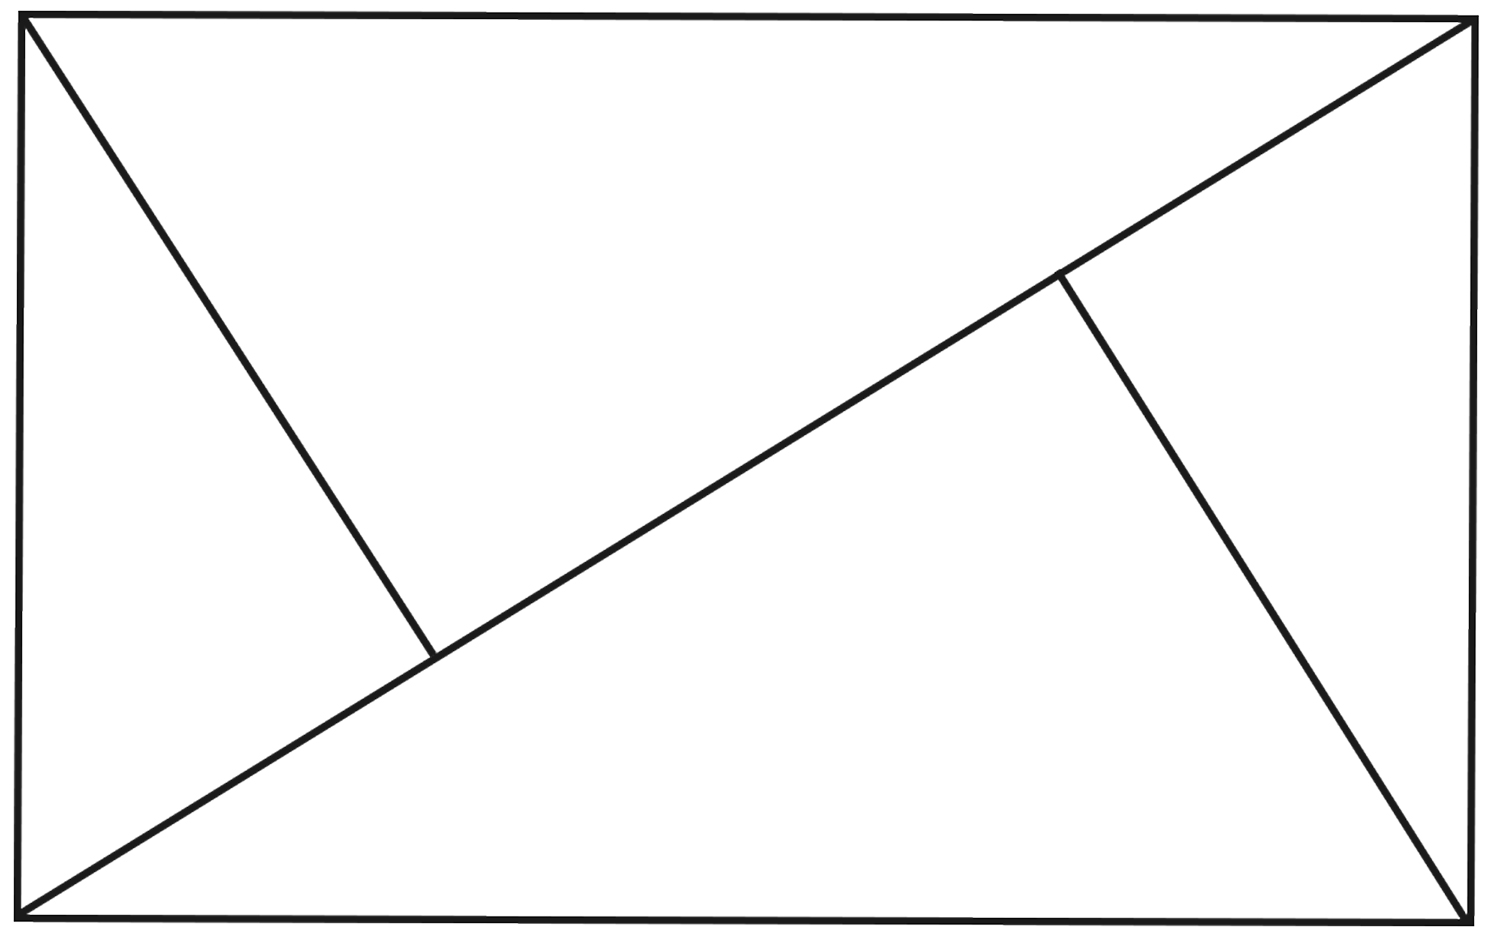 A diagram of the golden triangle composition rule